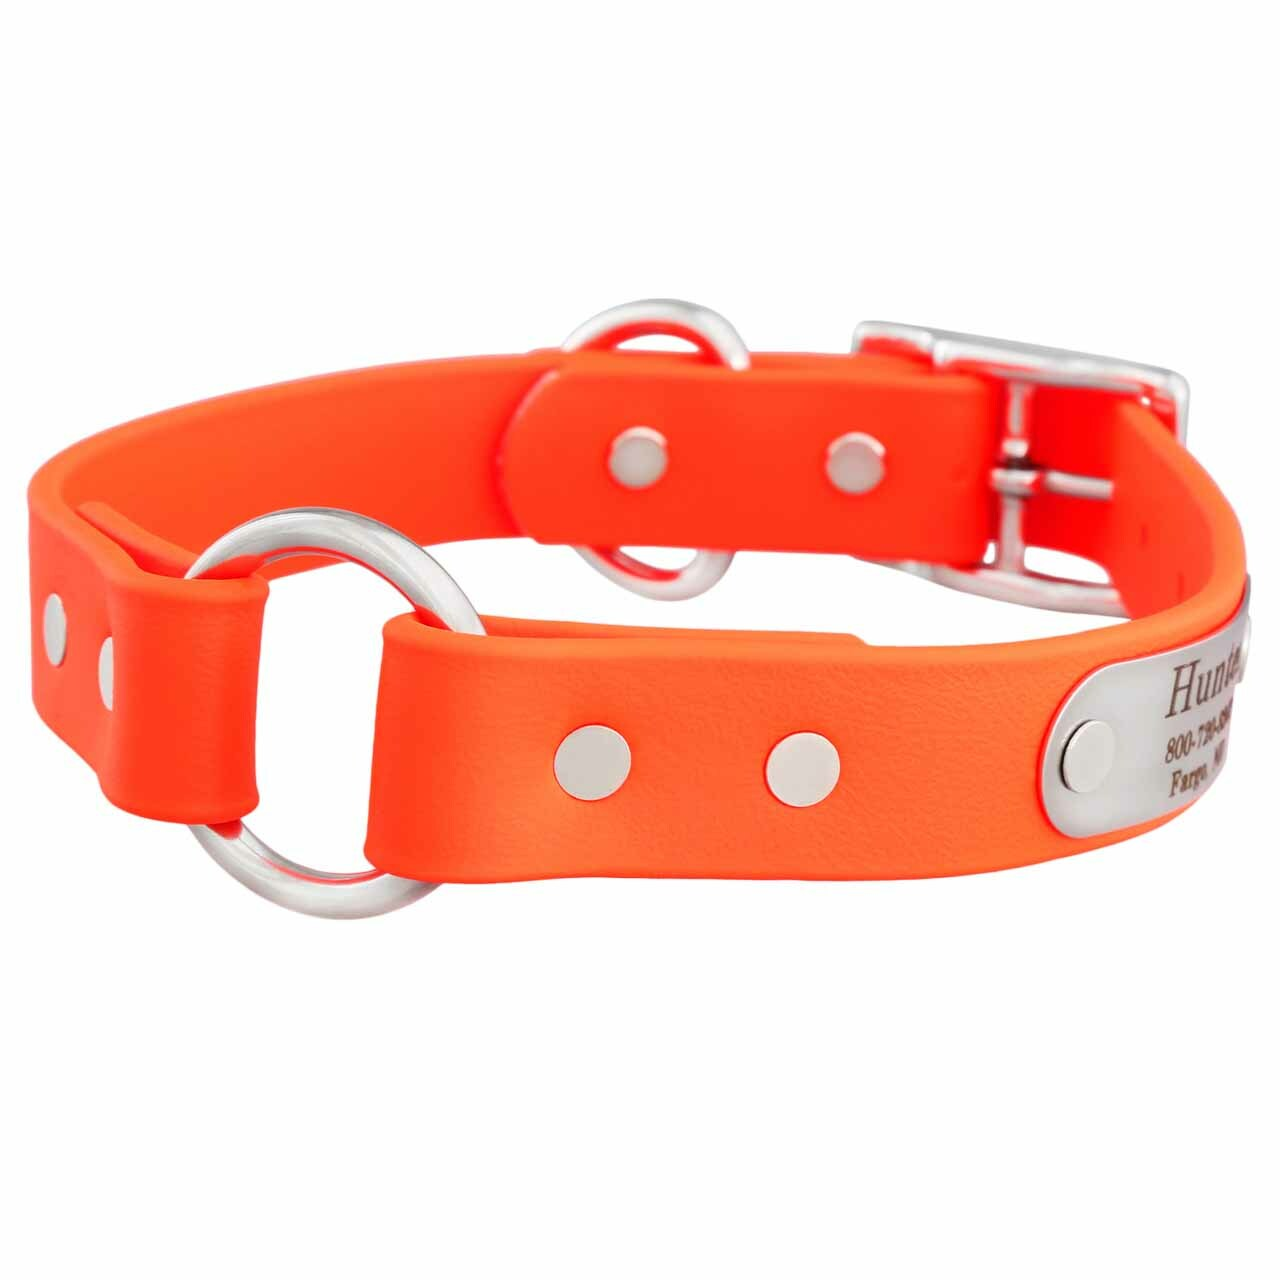 Waterproof Safety Collar with Personalized Nameplate Orange